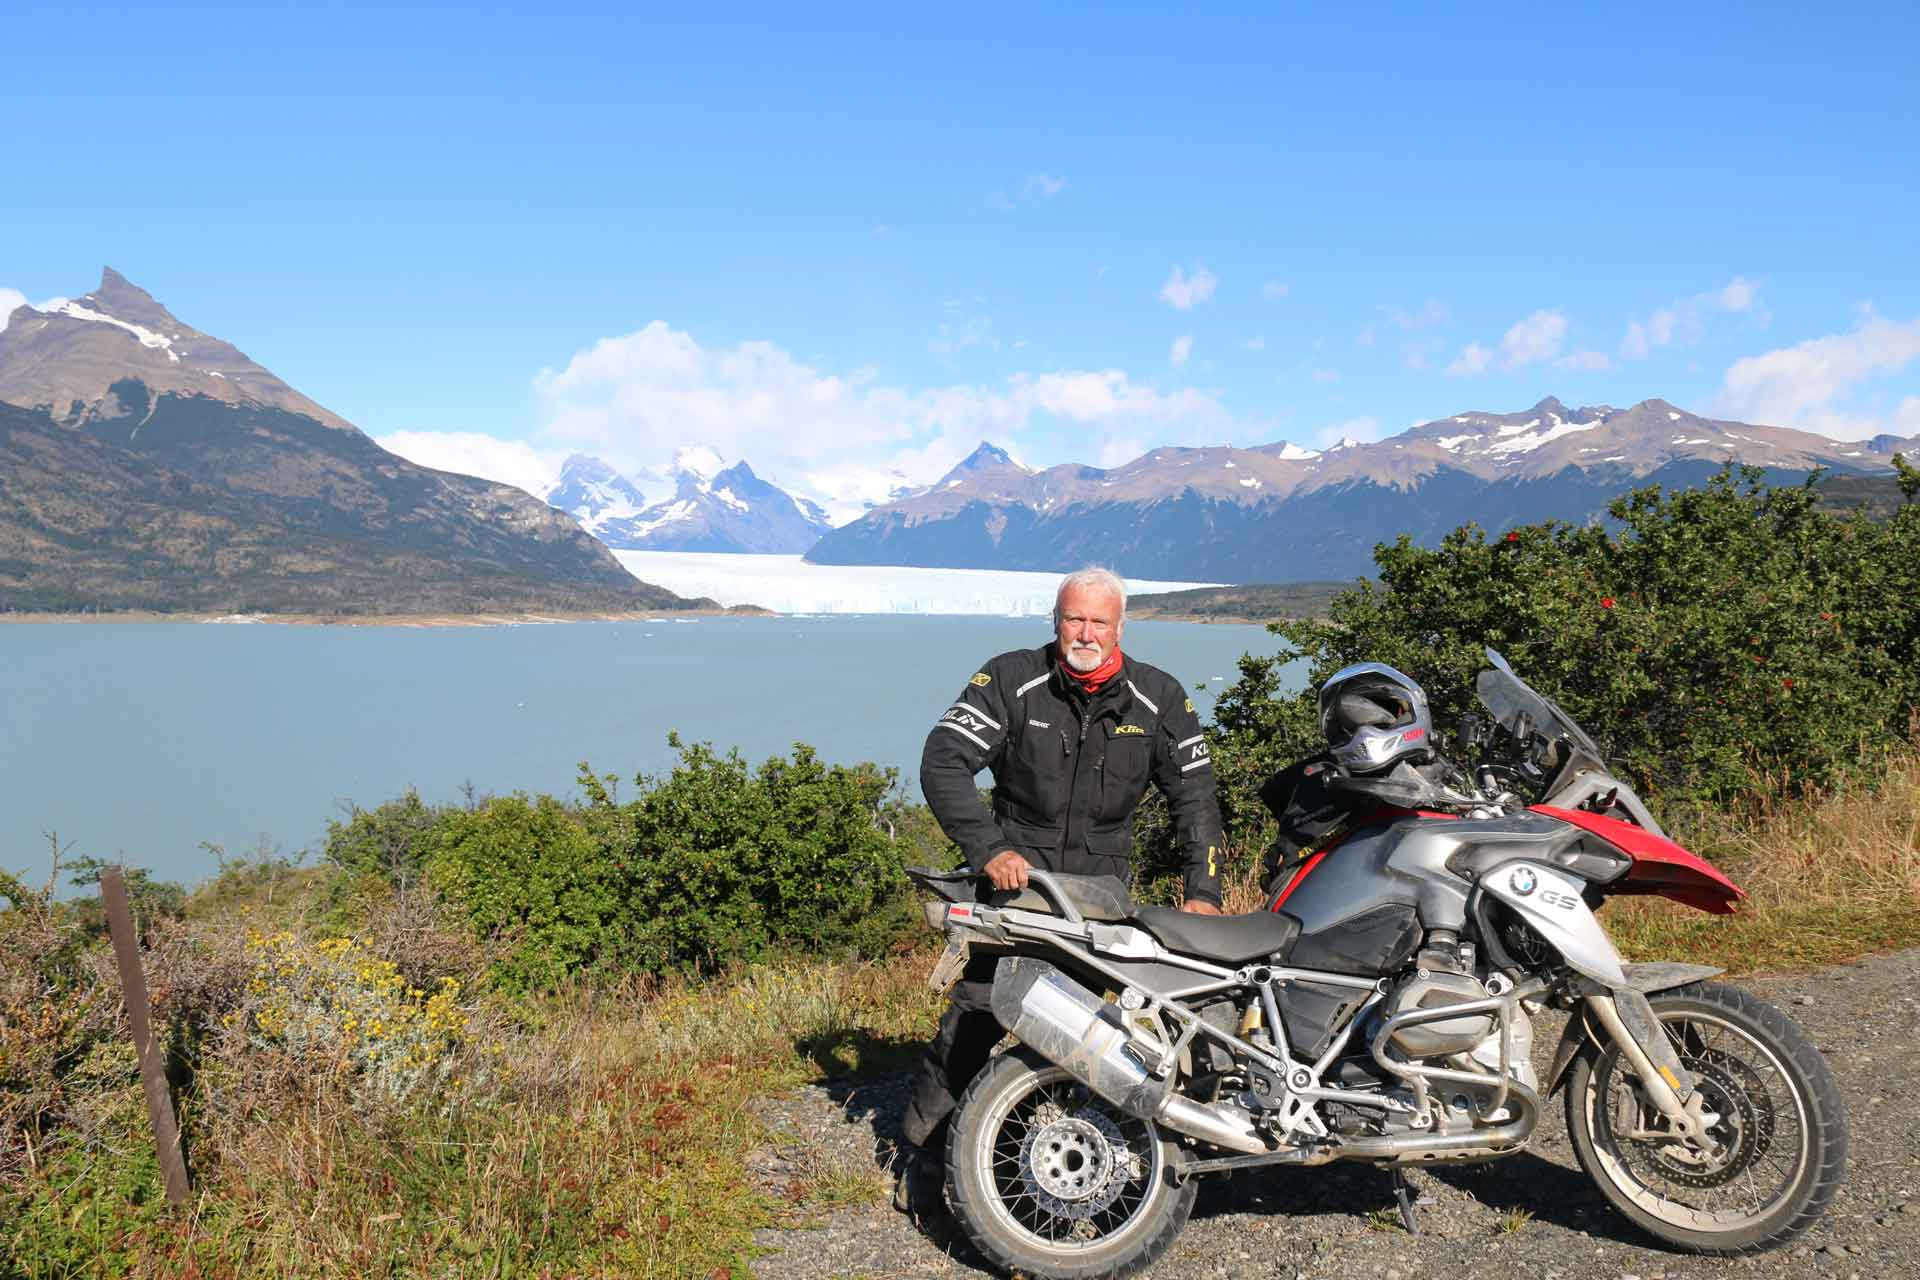 Patagonia 2019 Motorcycle Tour in South America by RawHyde Adventures